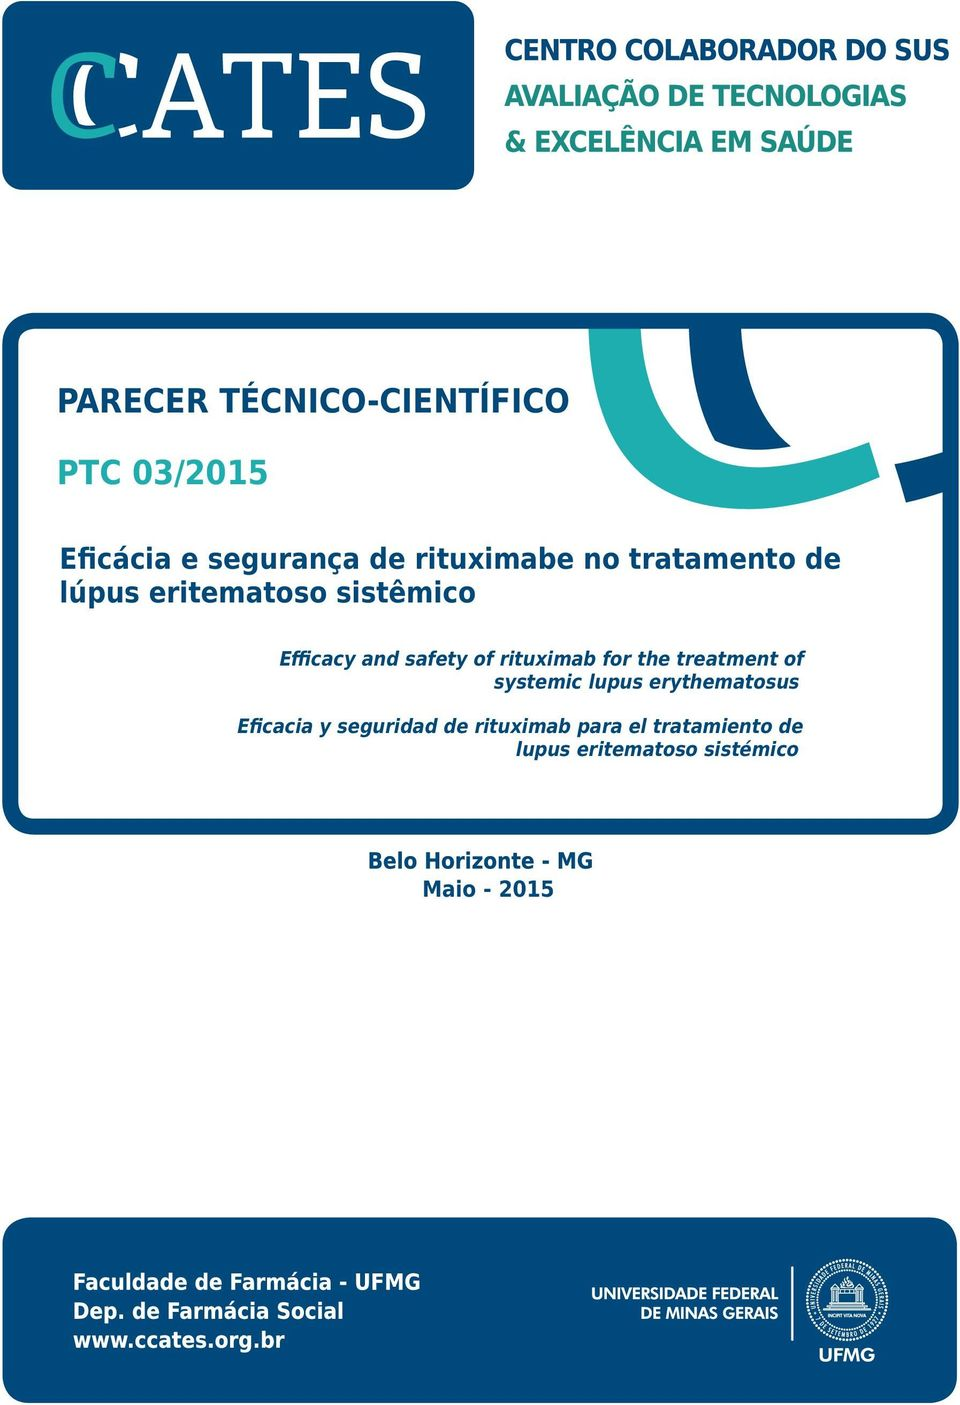 rituximab for the treatment of systemic lupus erythematosus Eficacia y